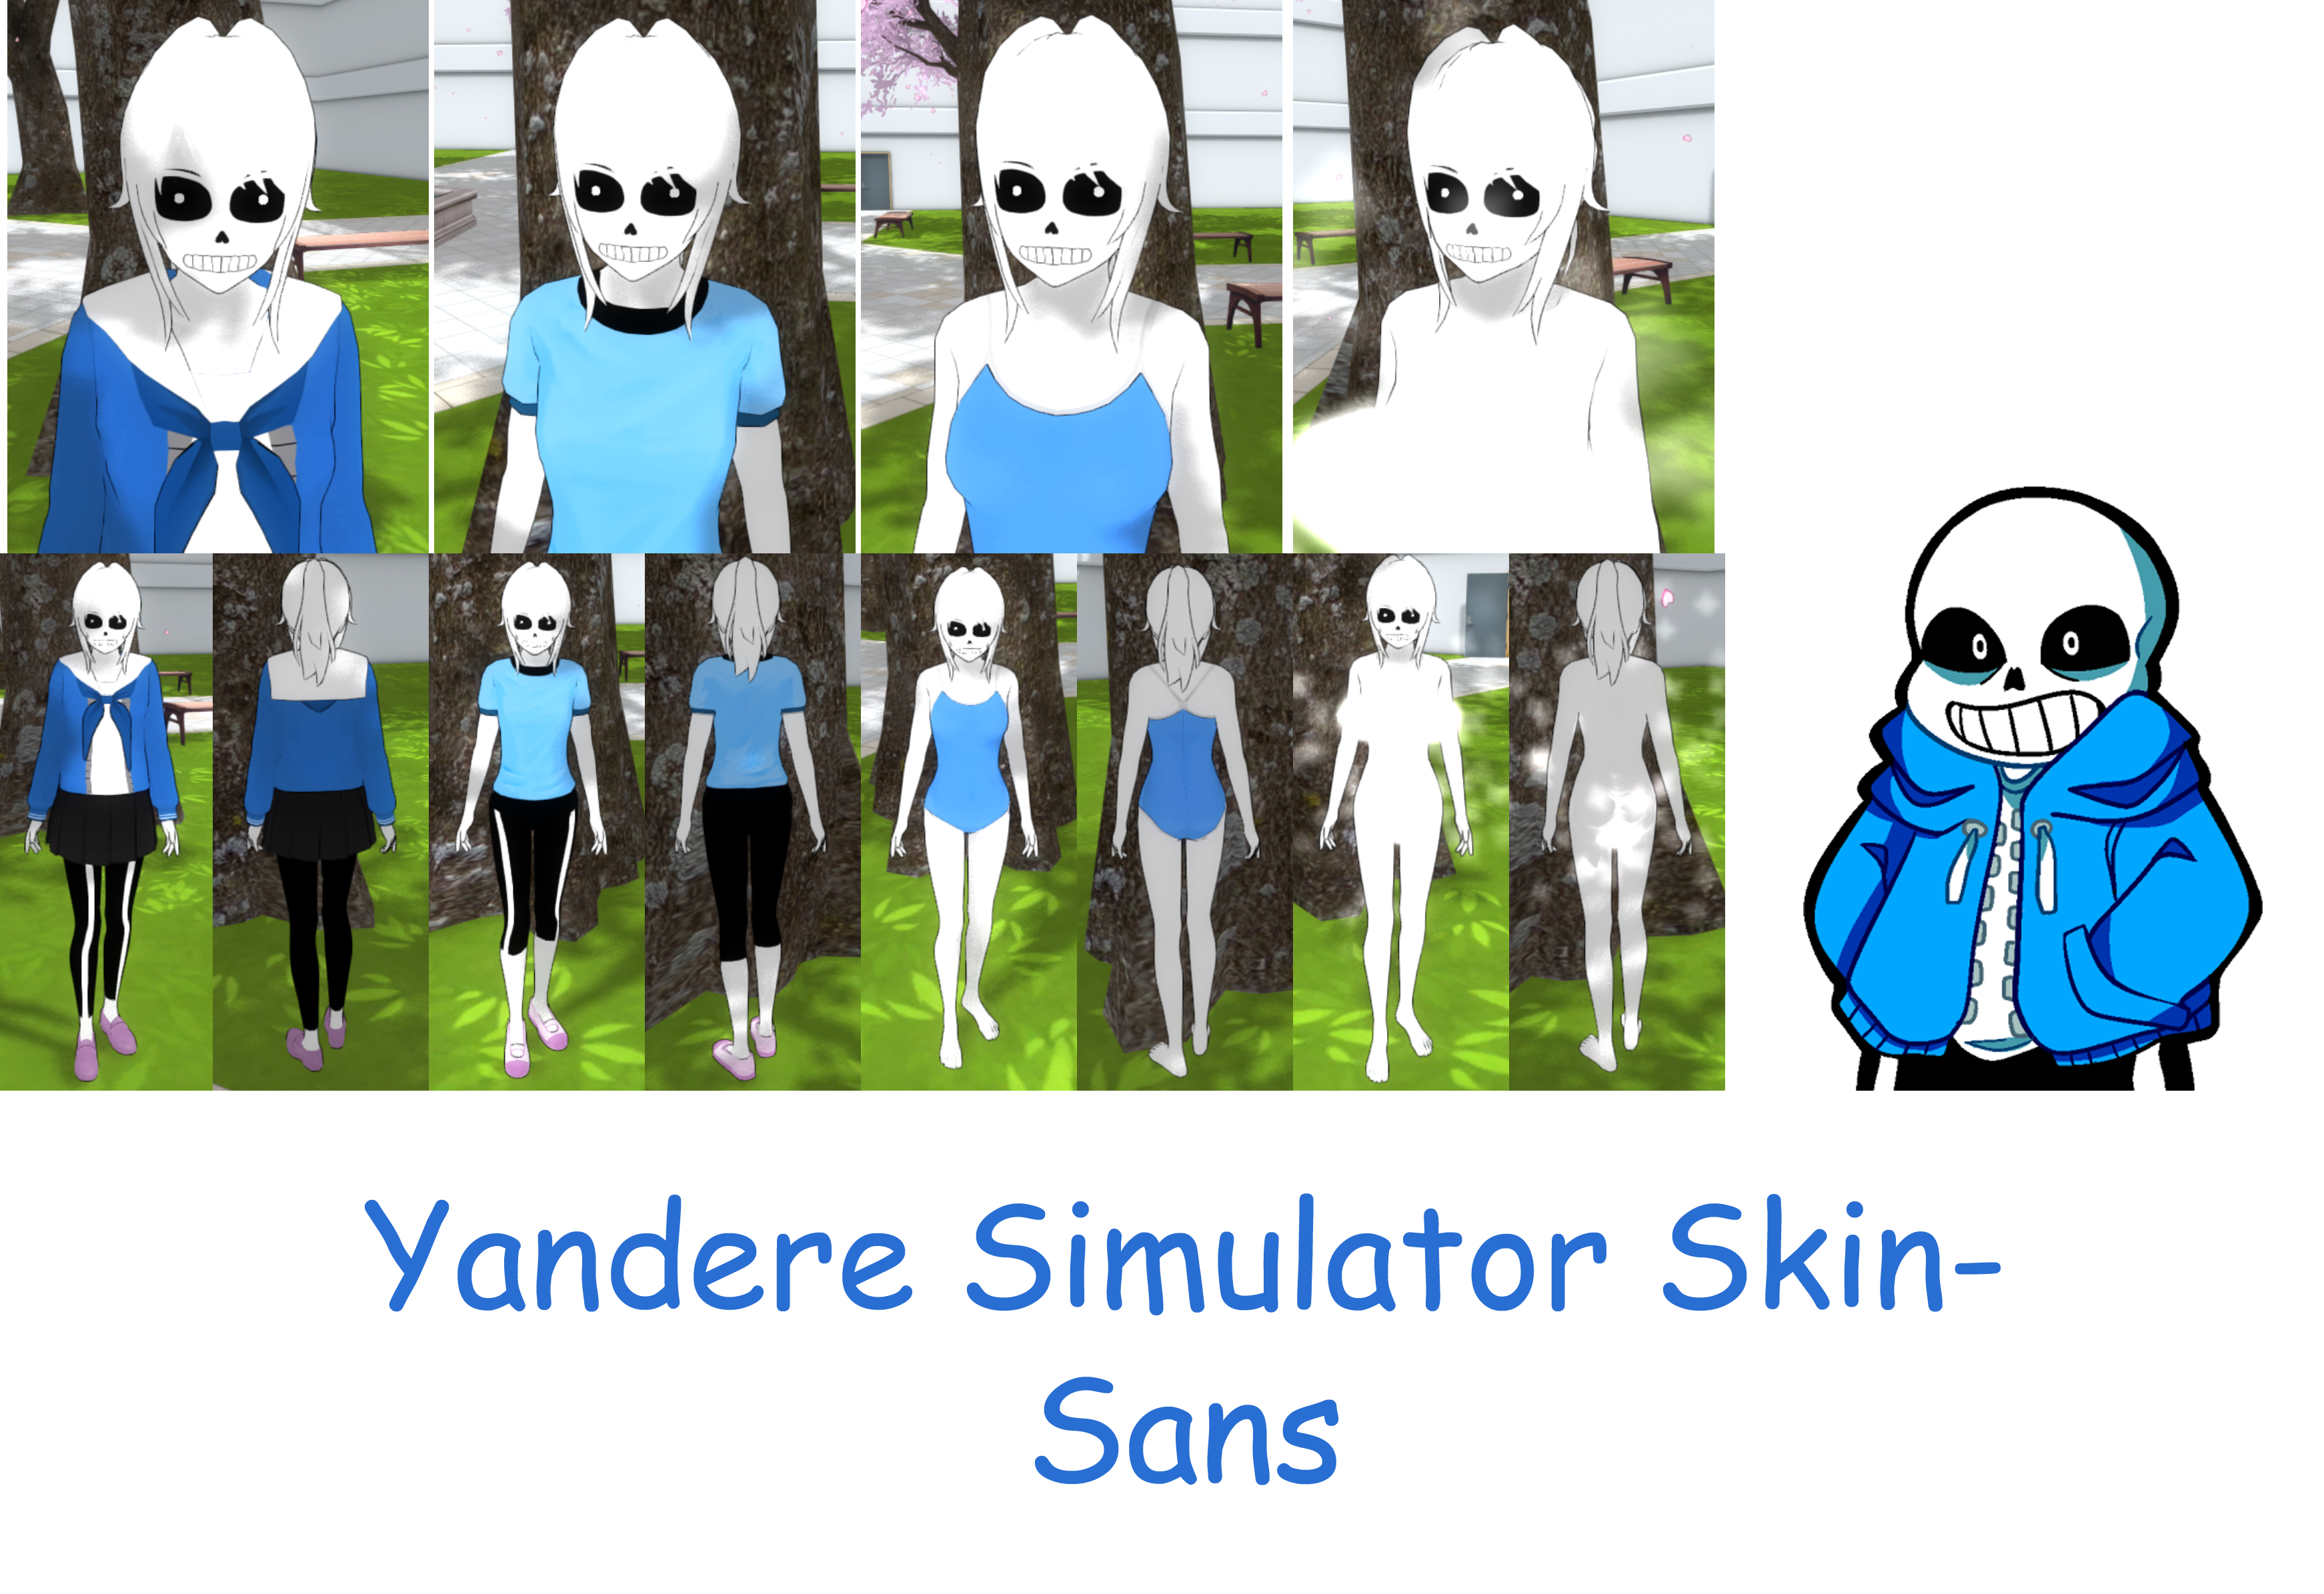 How to install sans undertale skin download sans undertale skin - 141 Thoughts On About Original Characters